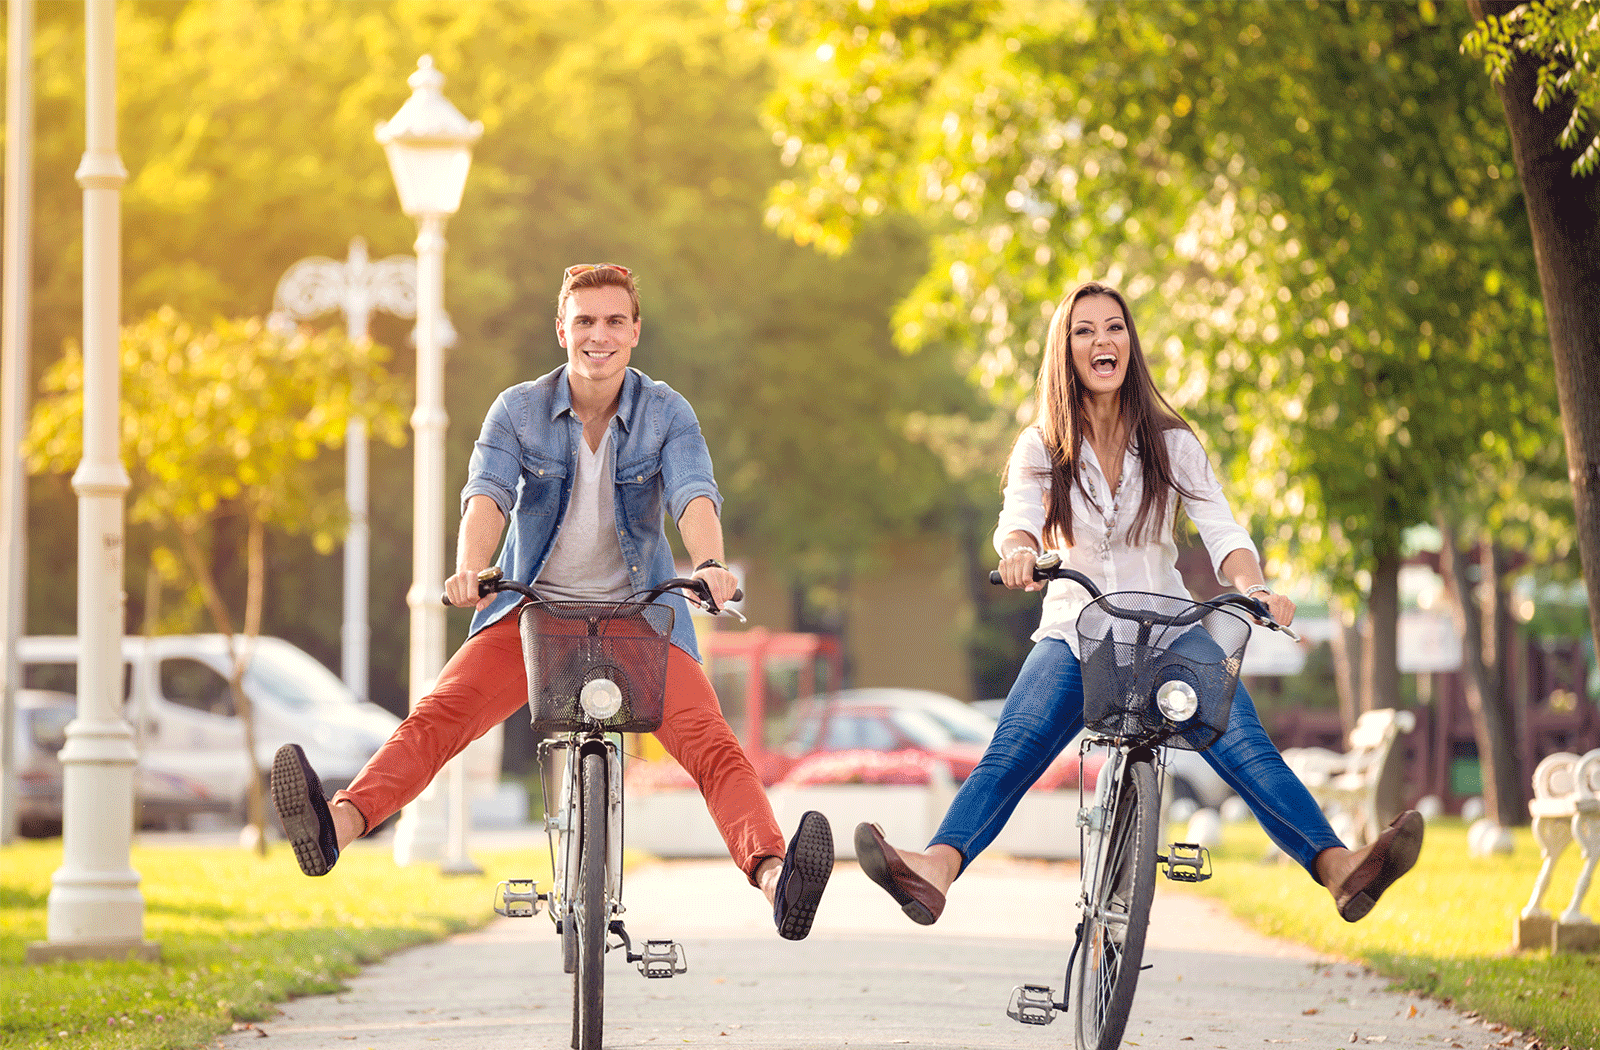 Couple riding bikes and laughing